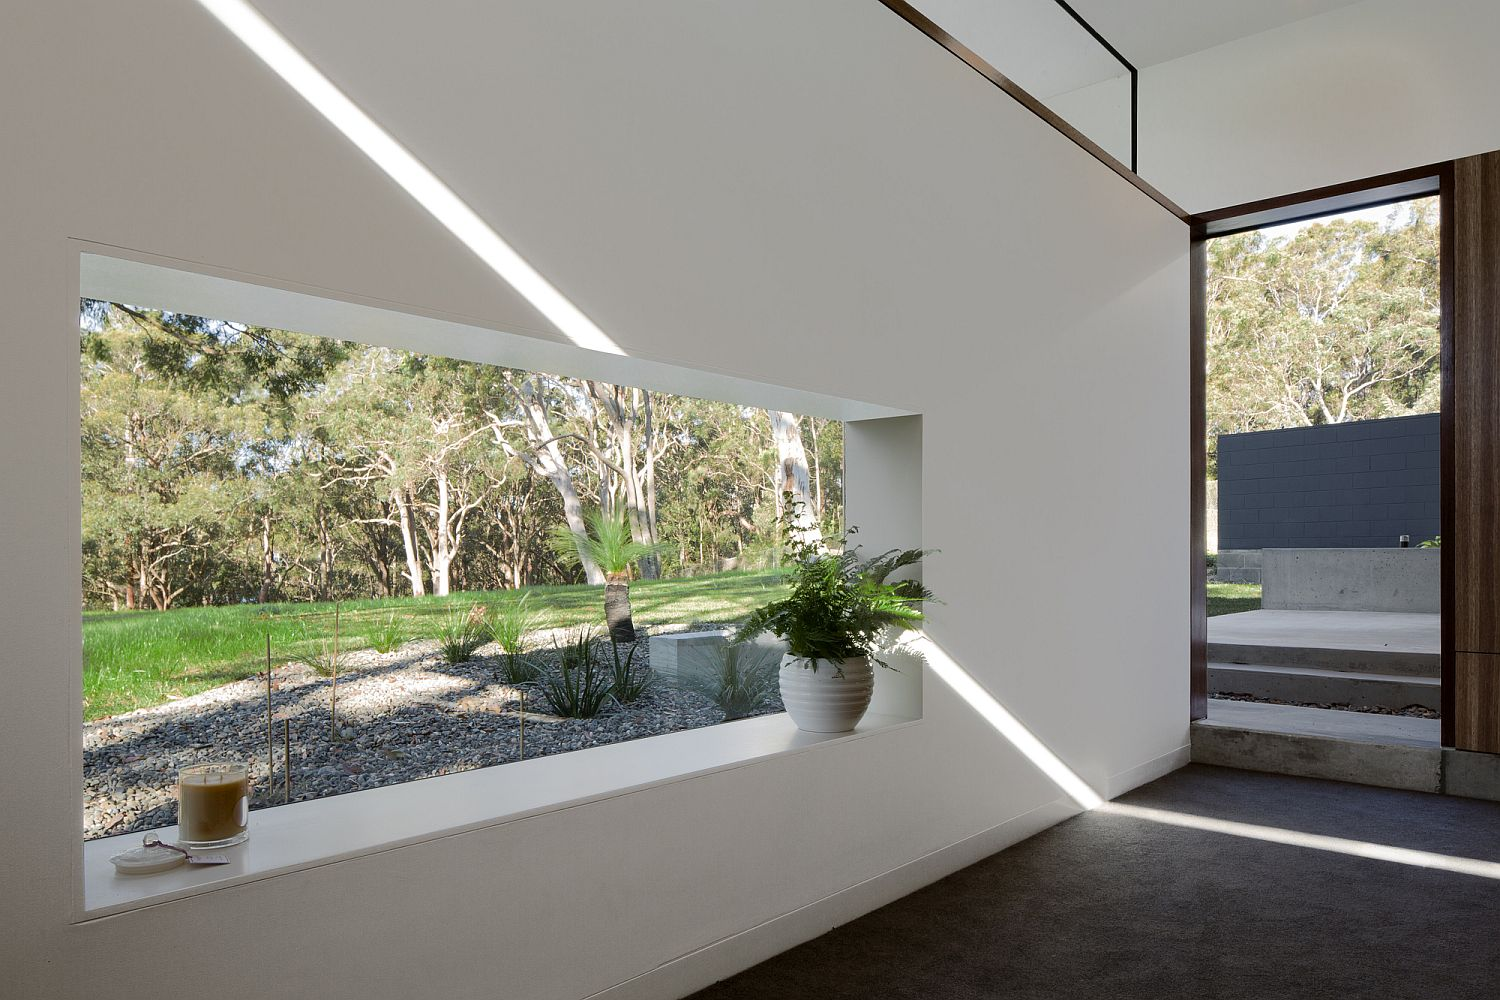 Cut-outs-and-windows-bring-in-ample-natural-light